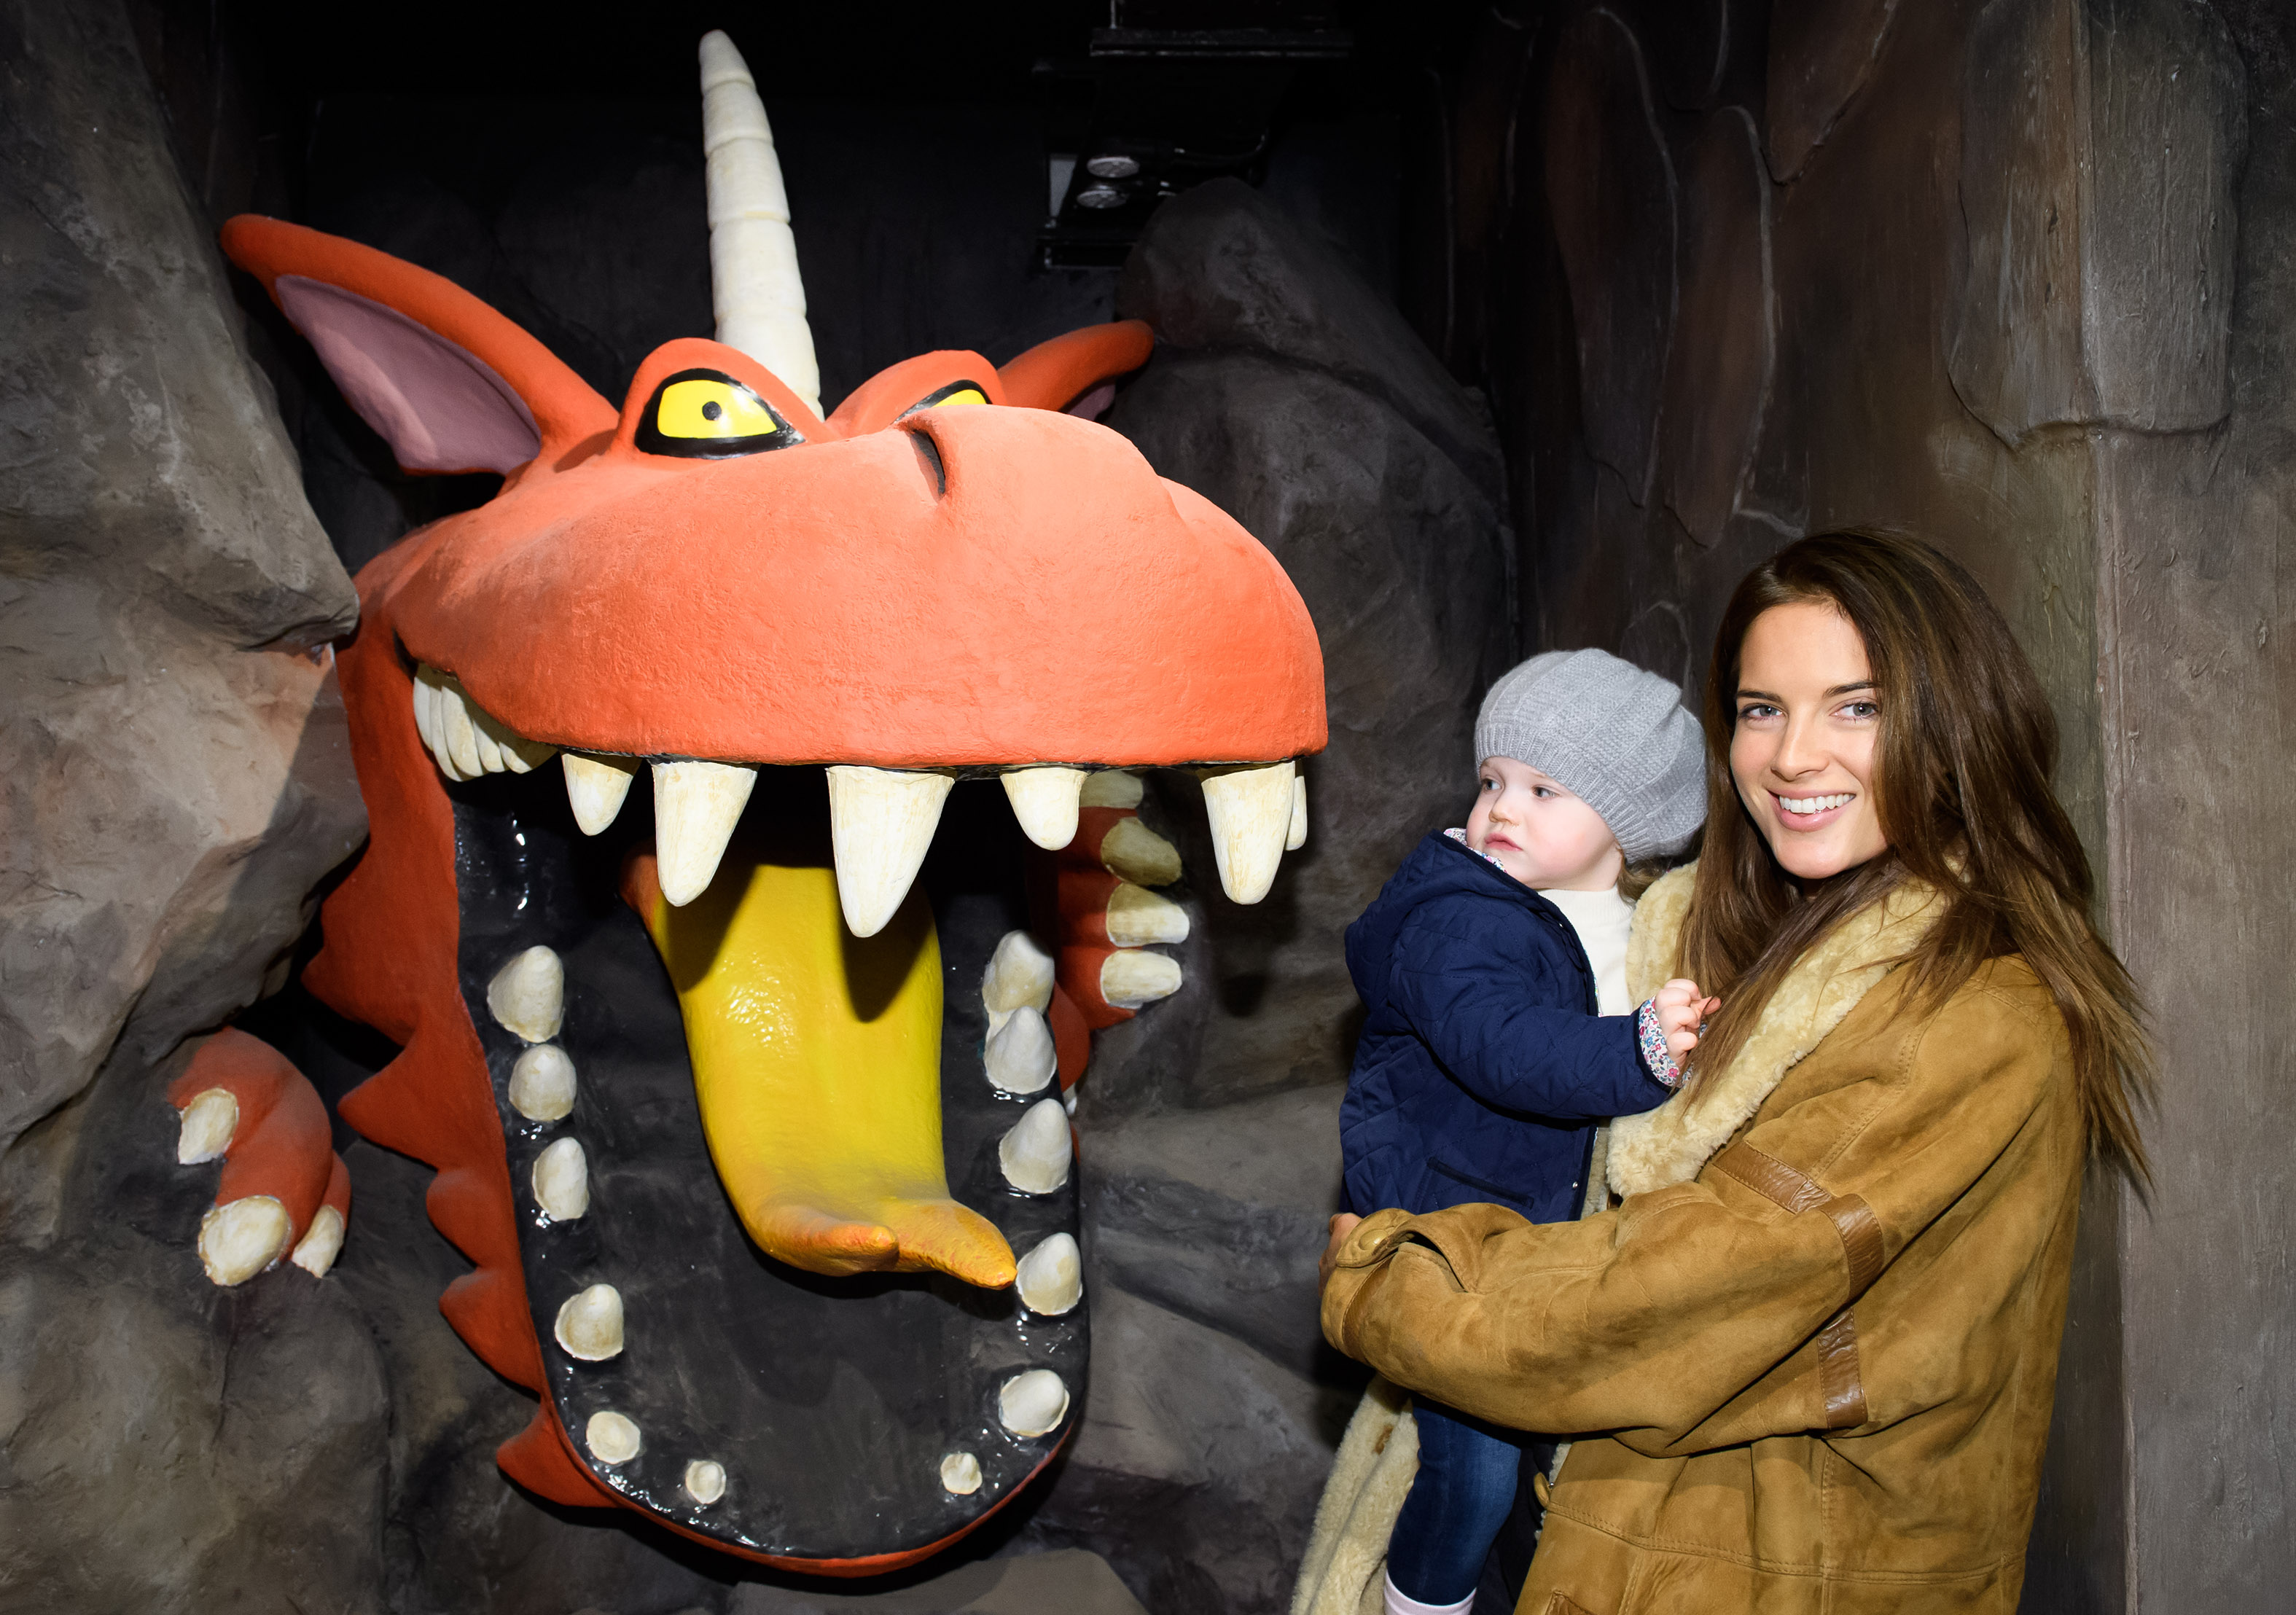 Binky Felsted and daughter India meet the Dragon Inside Room on the Broom - A Magical Journey - Image from INHOUSE IMAGES